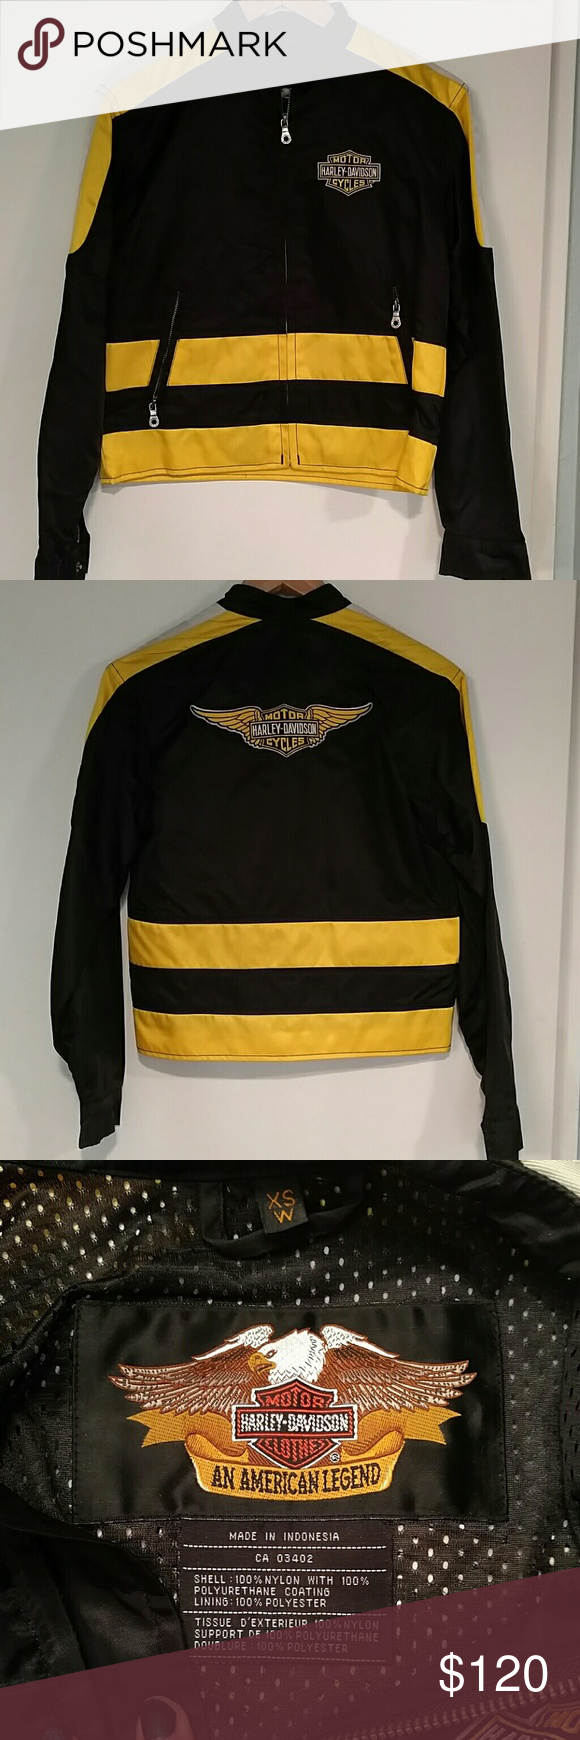 Harley Davidson jacket Lightweight nylon Harley jacket. Perfect condition. Harley-Davidson Jackets & Coats